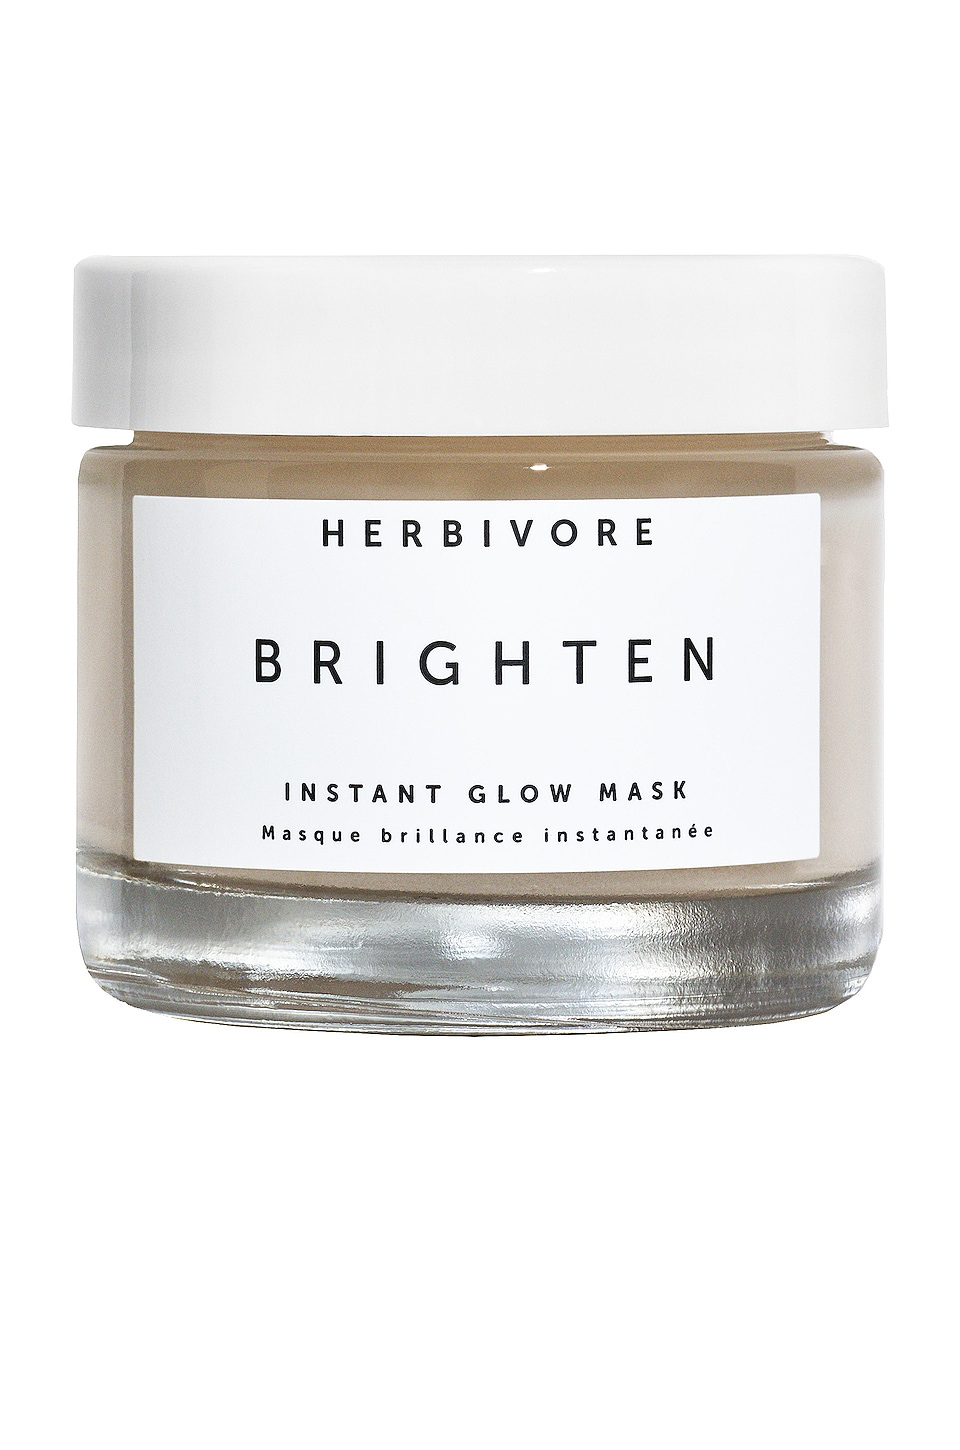 Herbivore Botanicals Brighten Pineapple & Gemstone Wet Mask in All